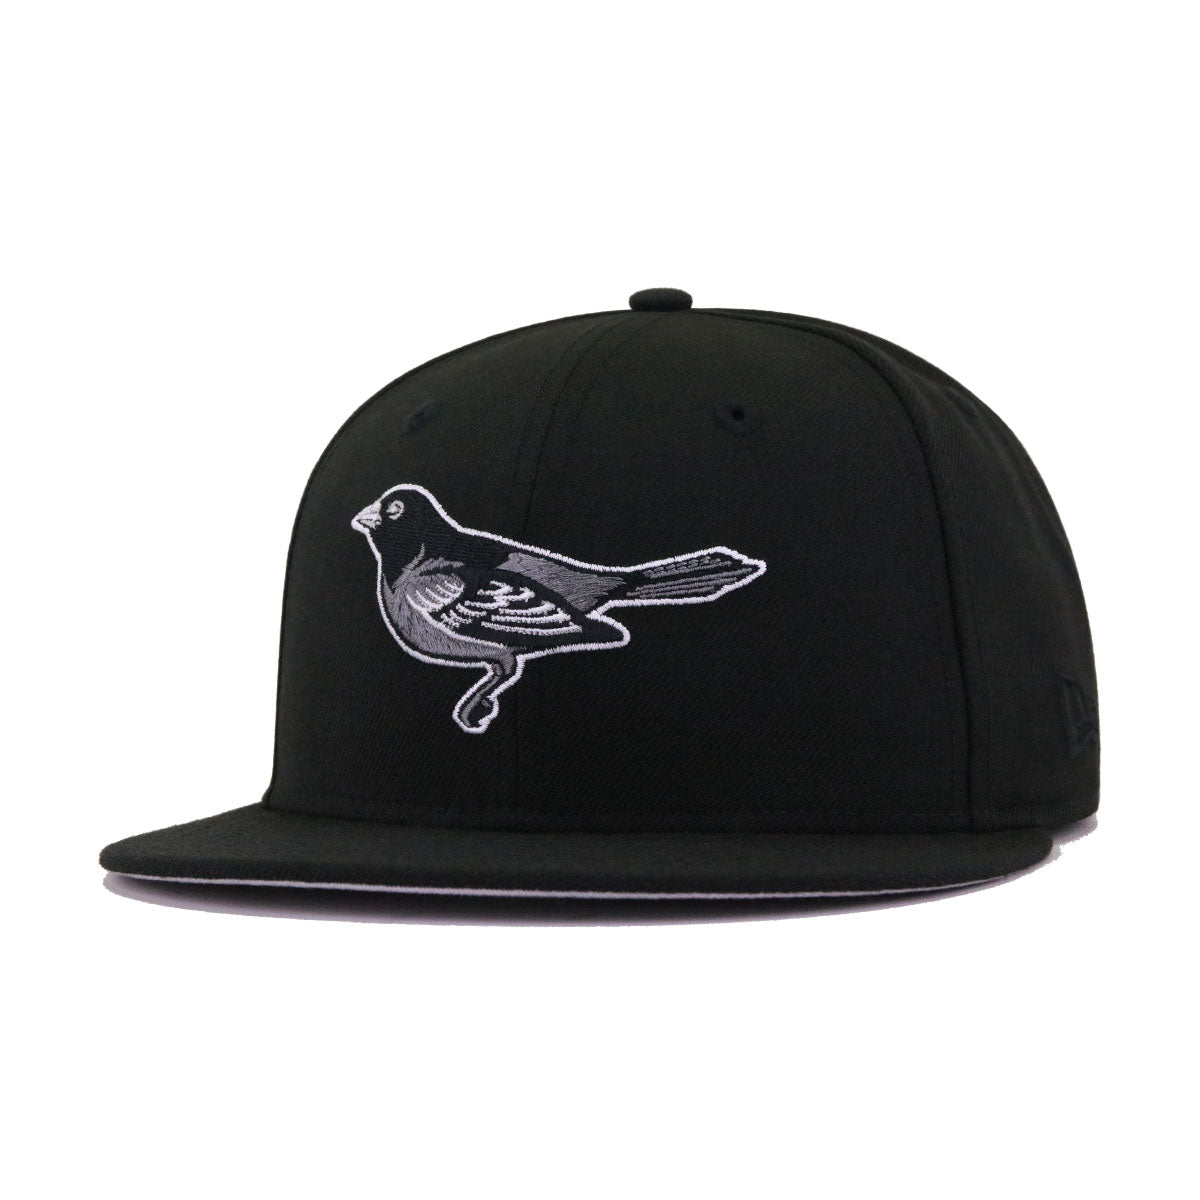 Baltimore Orioles Black Crow New Era 59Fifty Fitted